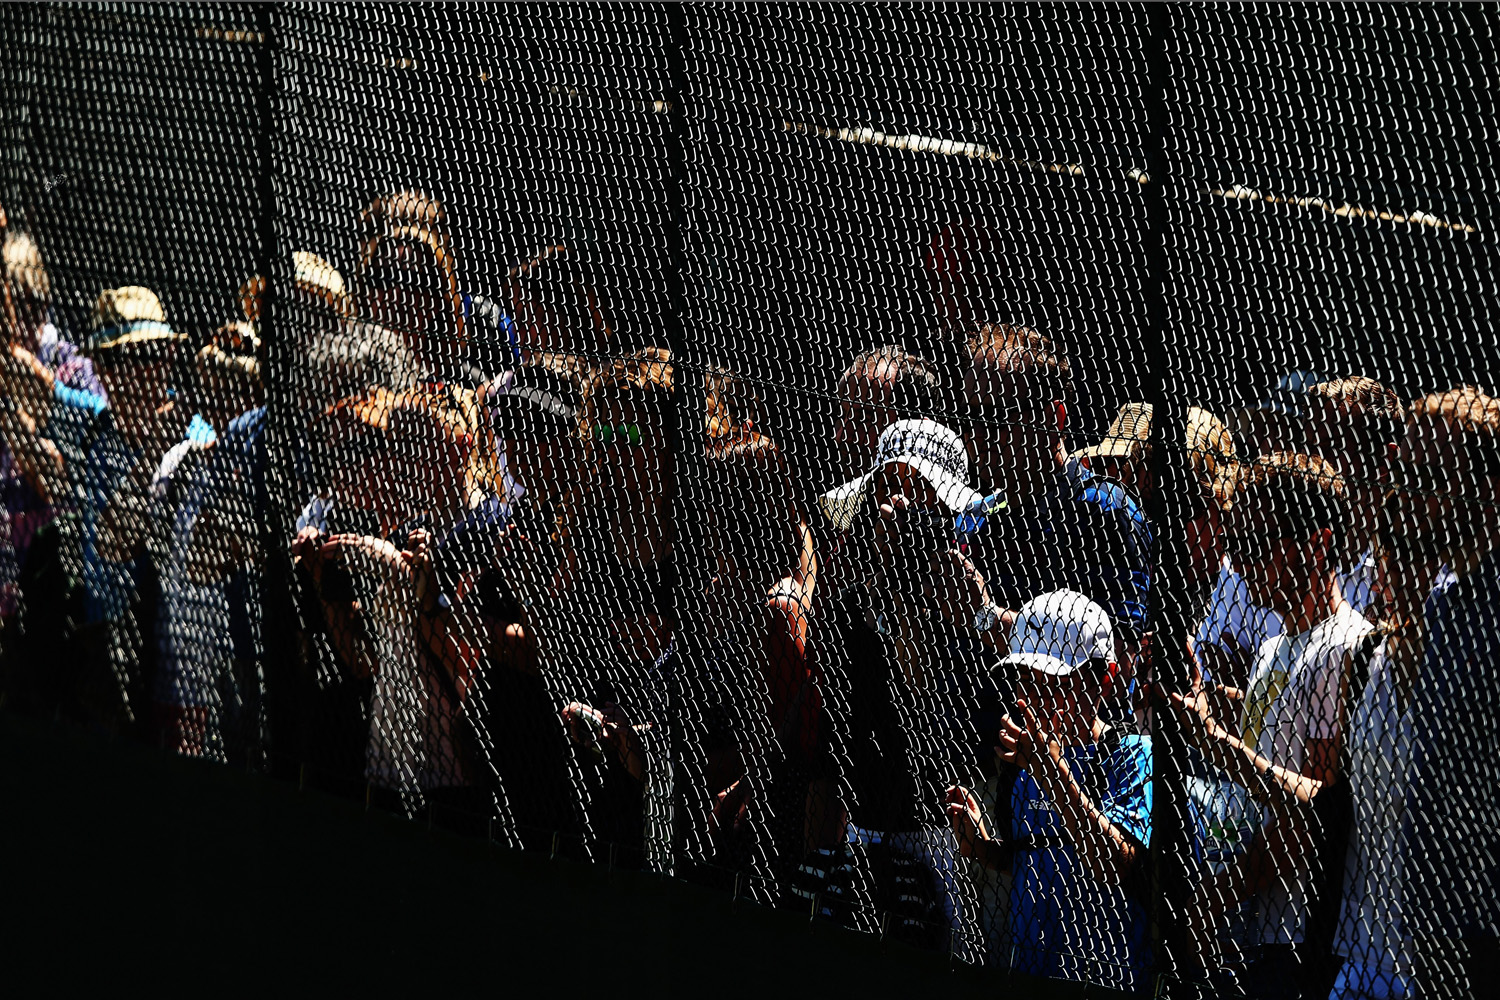 Jul. 3, 2014. Spectators watch the action on the practice courts on day ten of the Wimbledon Lawn Tennis Championships at the All England Lawn Tennis and Croquet Club  in London, England.